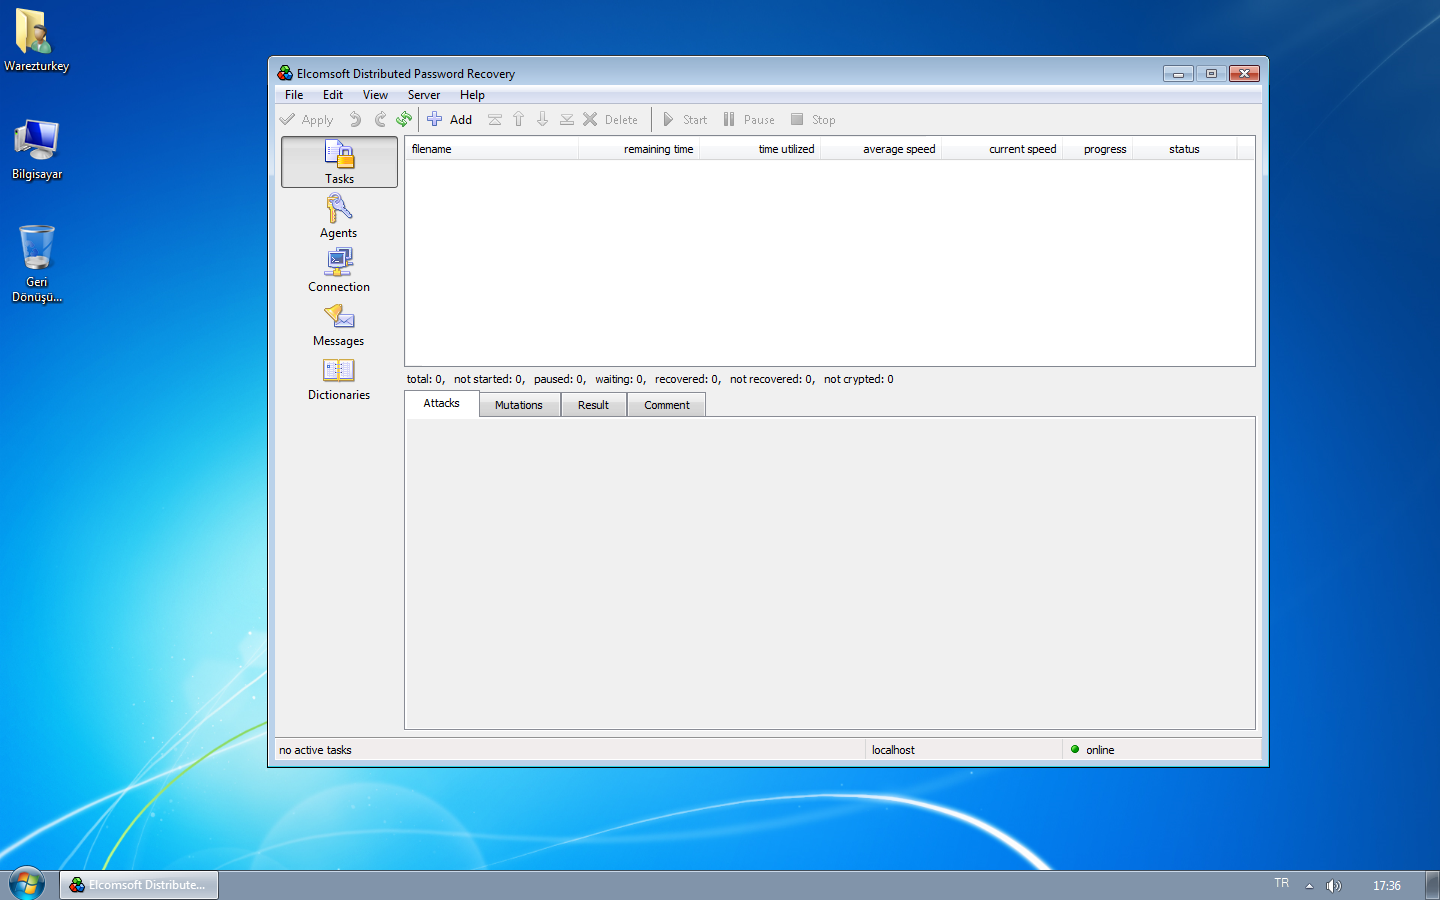 ElcomSoft Distributed Password Recovery 4.10.1236